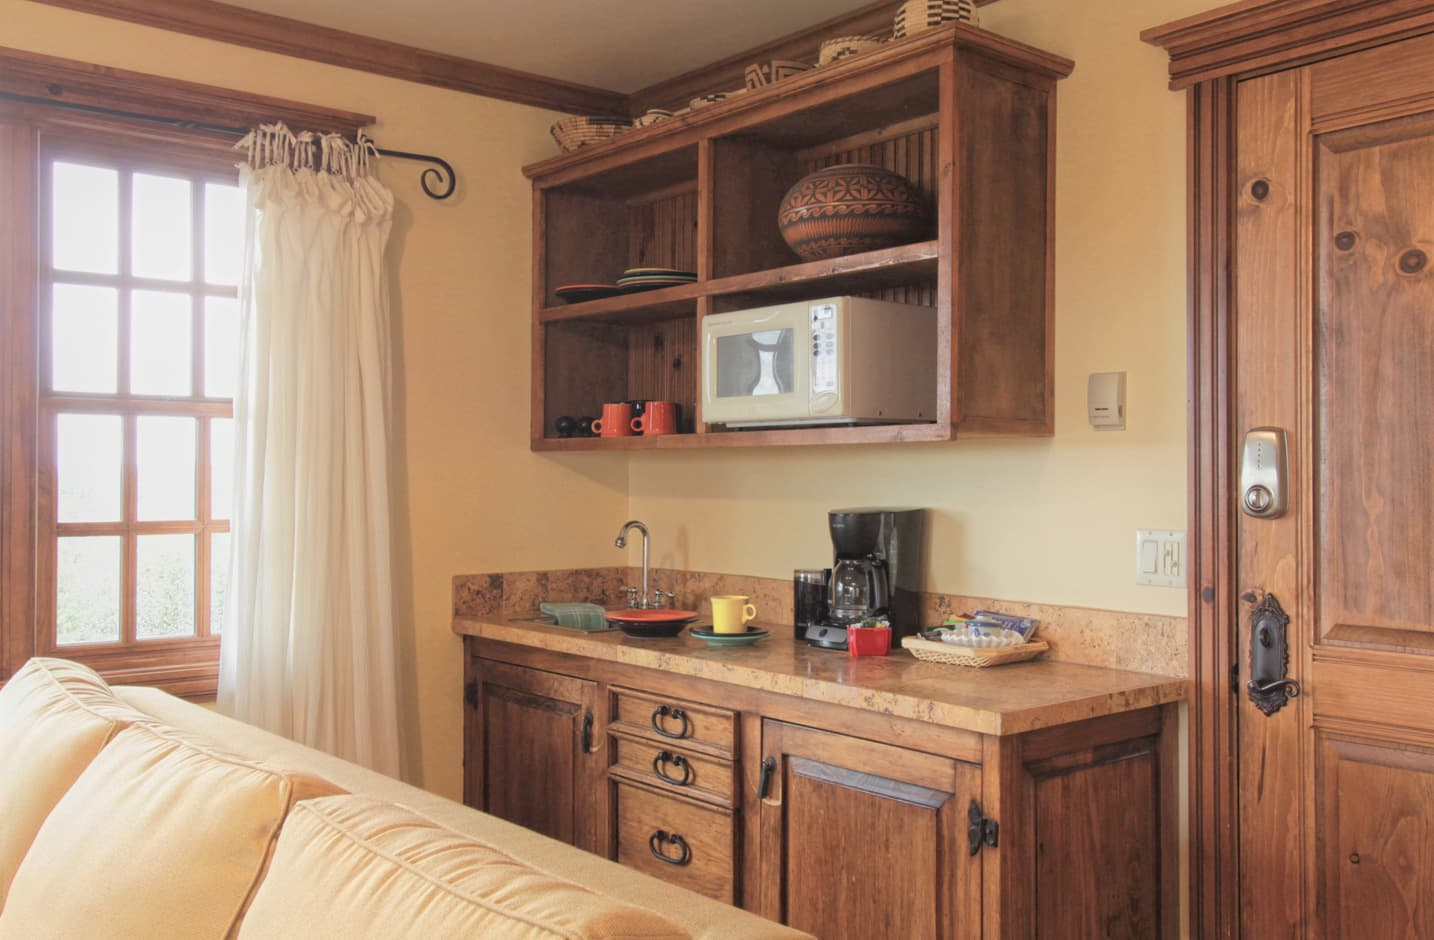 Wetbar with a sink and coffee maker and microwave